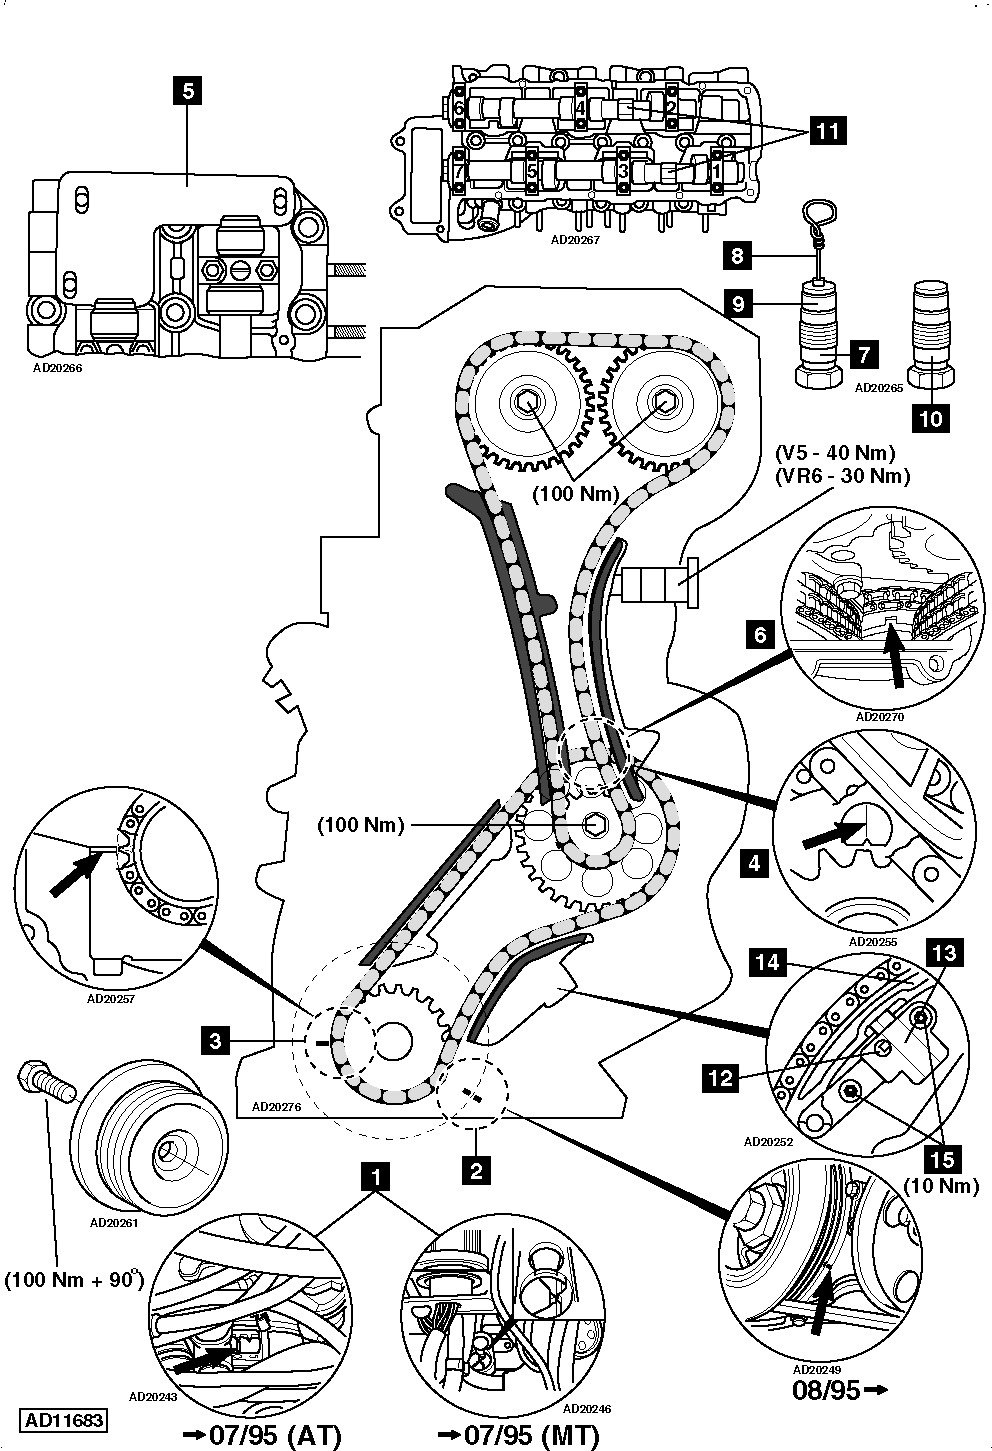 95 vw 2 0 engine diagram - auto electrical wiring diagram vw jetta  radiator fan wiring